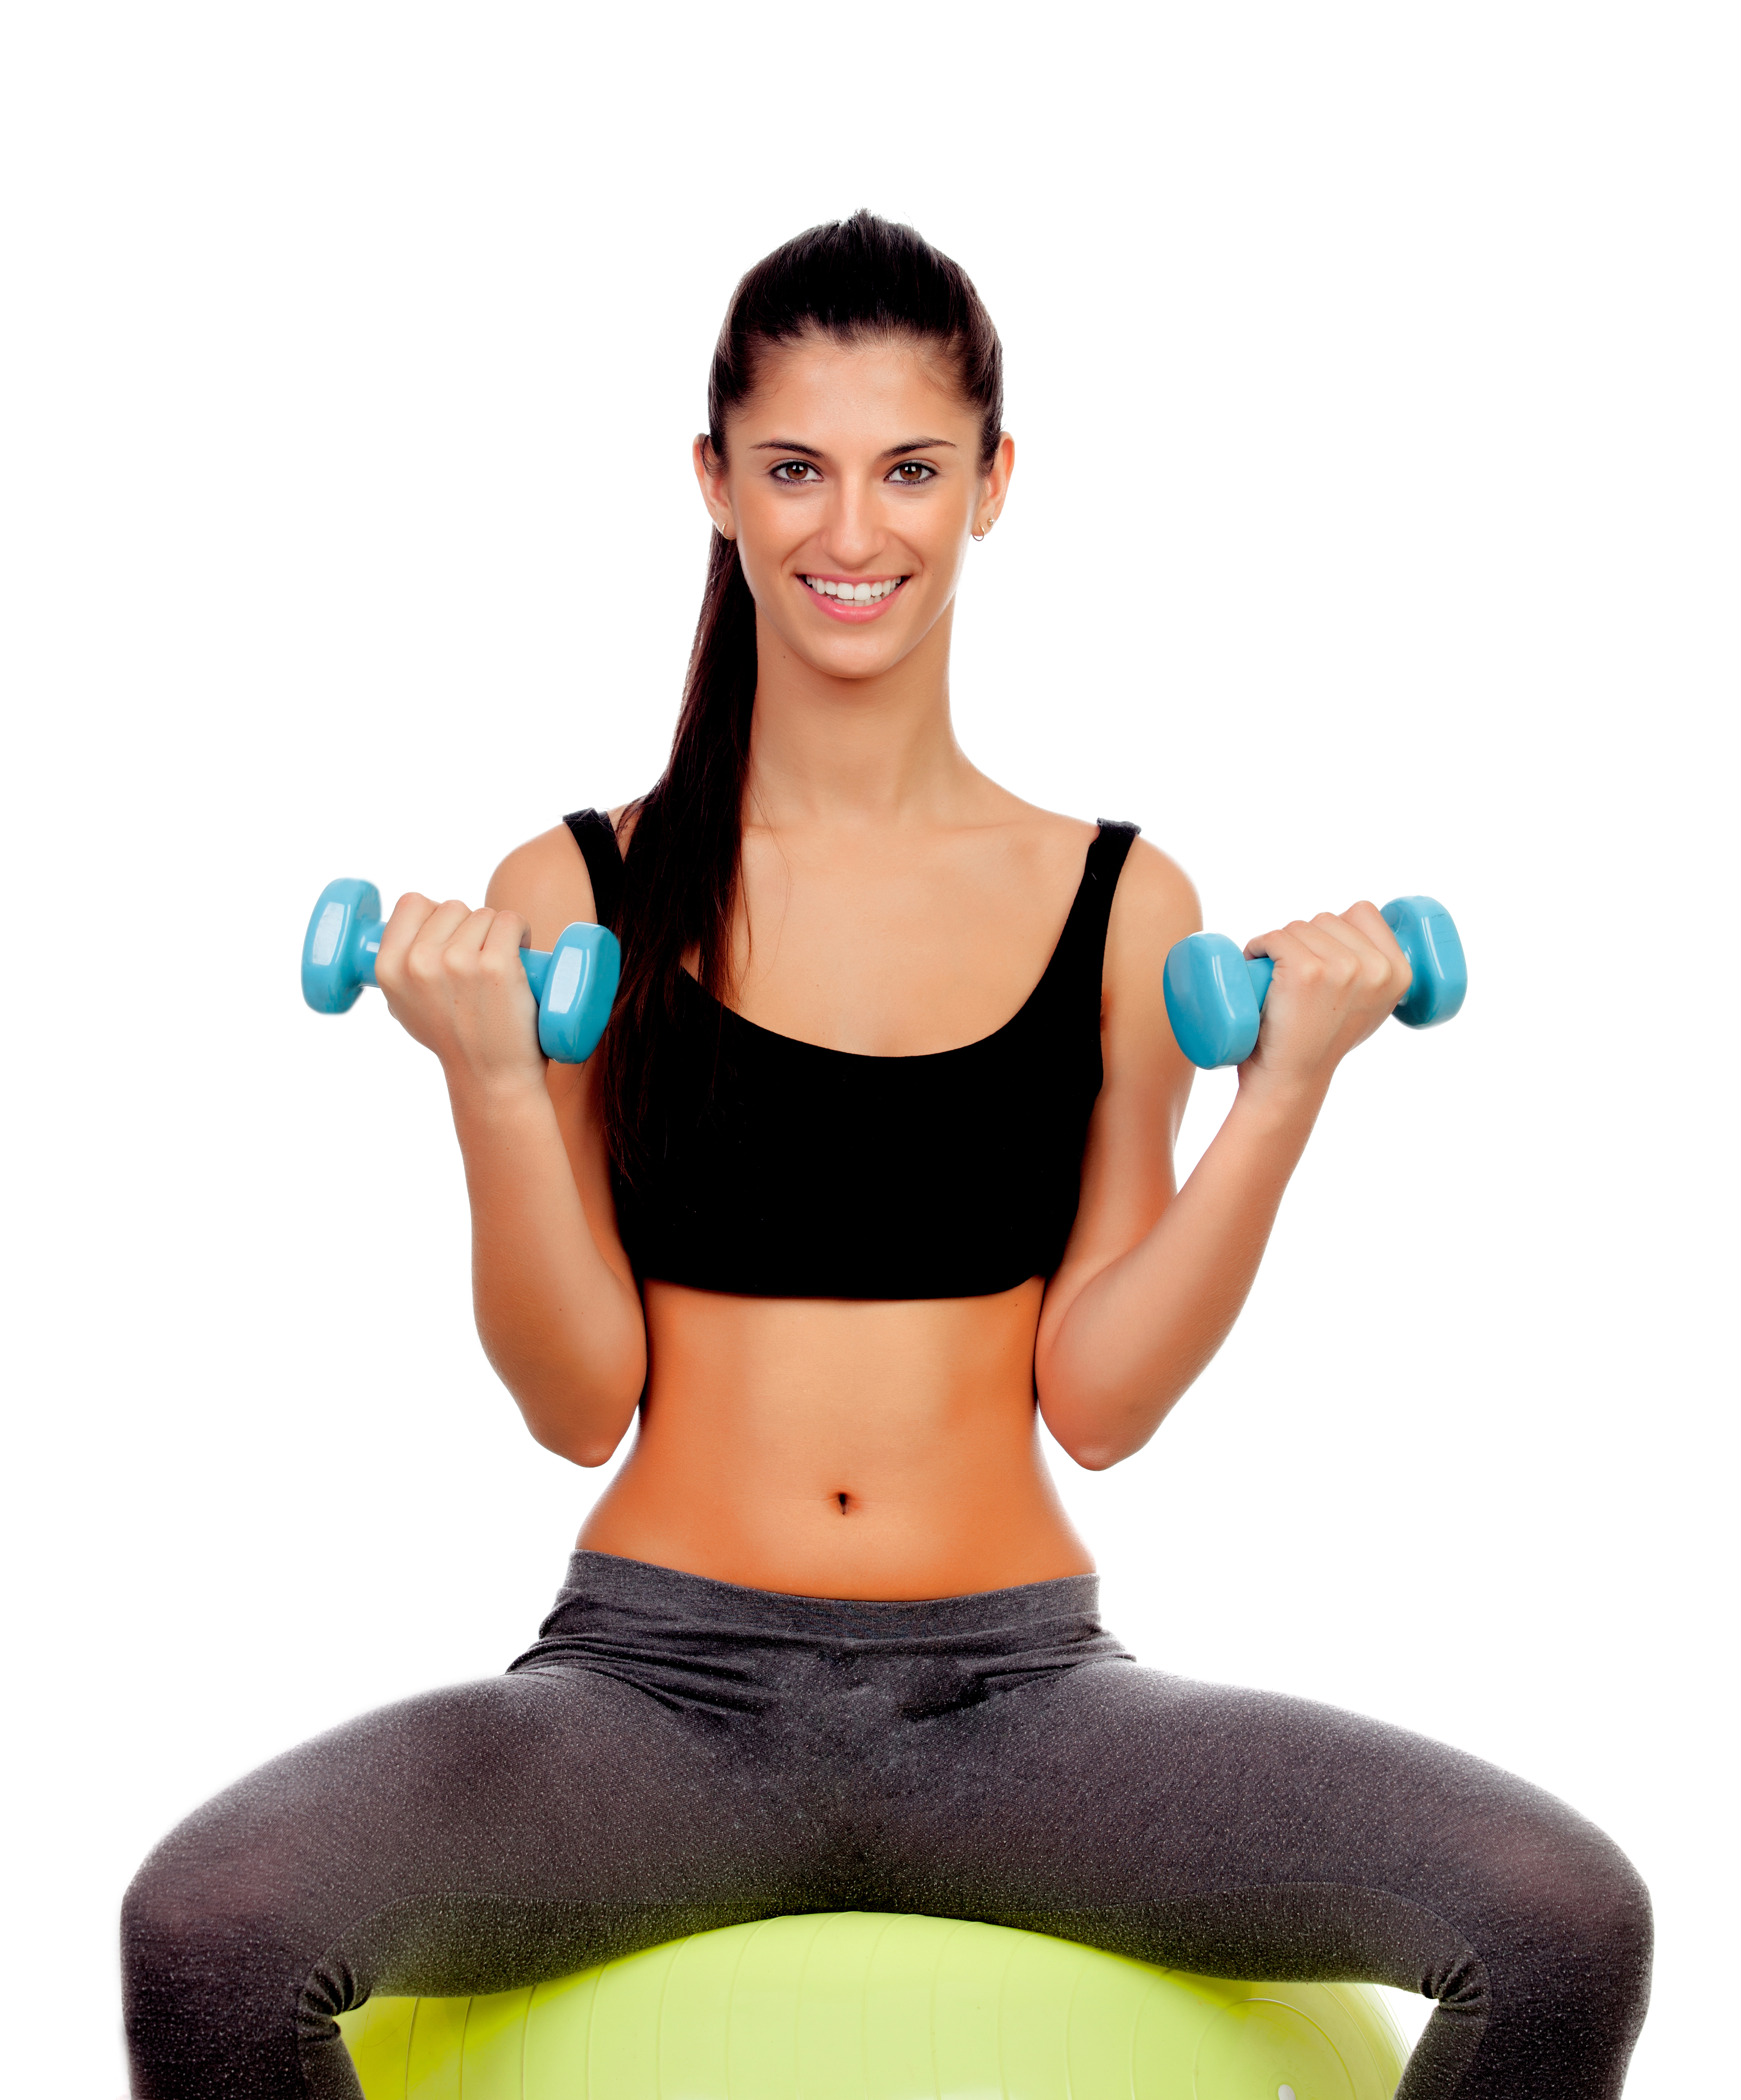 Attractive girl lifting weights sitting on a ball